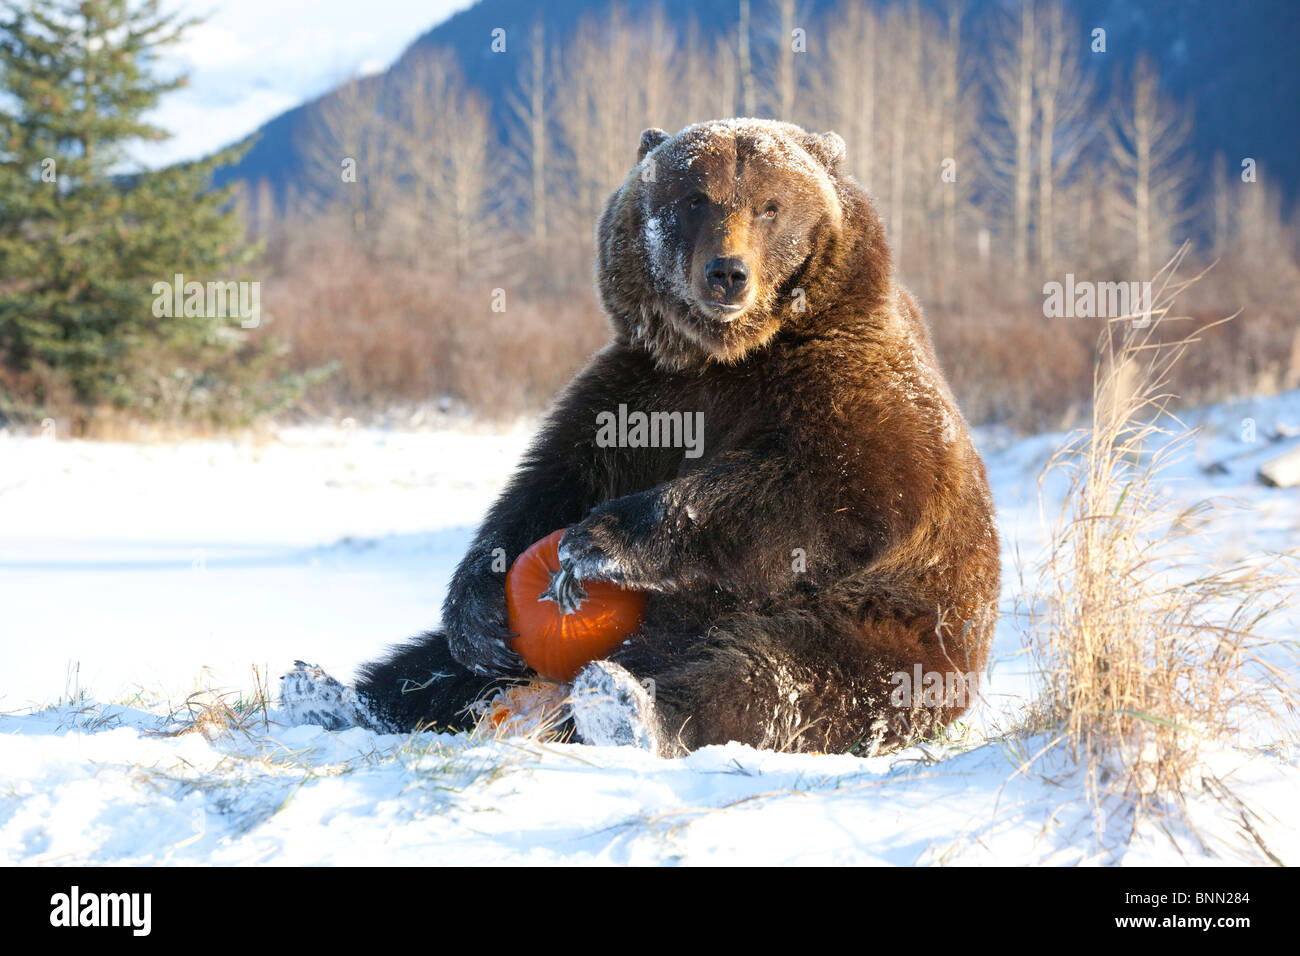 CAPTIVE Grizzly plays with a pumpkin during Winter at the Alaska Wildlife Conservation Center, Alaska - Stock Image